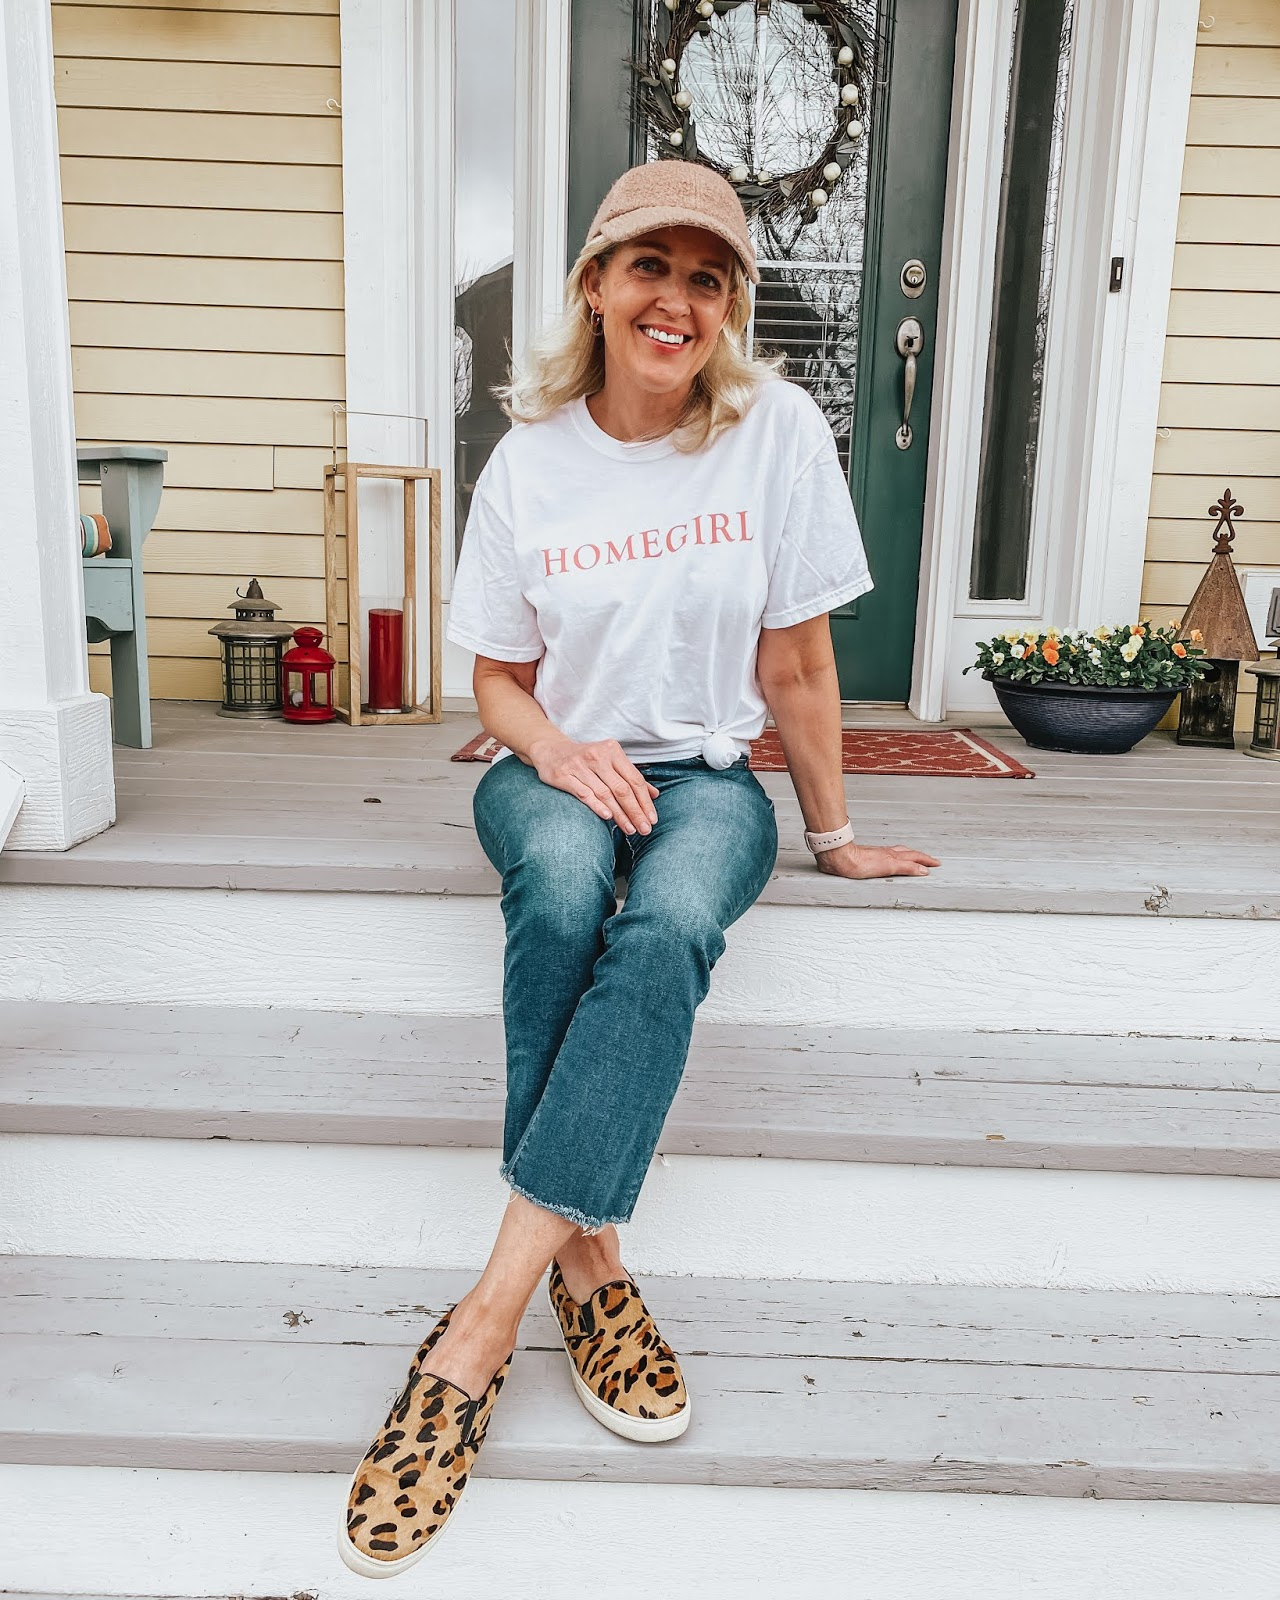 Perfect outfit for relaxing at home during the lockdown from Jill at Doused in Pink: Homegirl tee-shirt, leopard sneakers and jeans